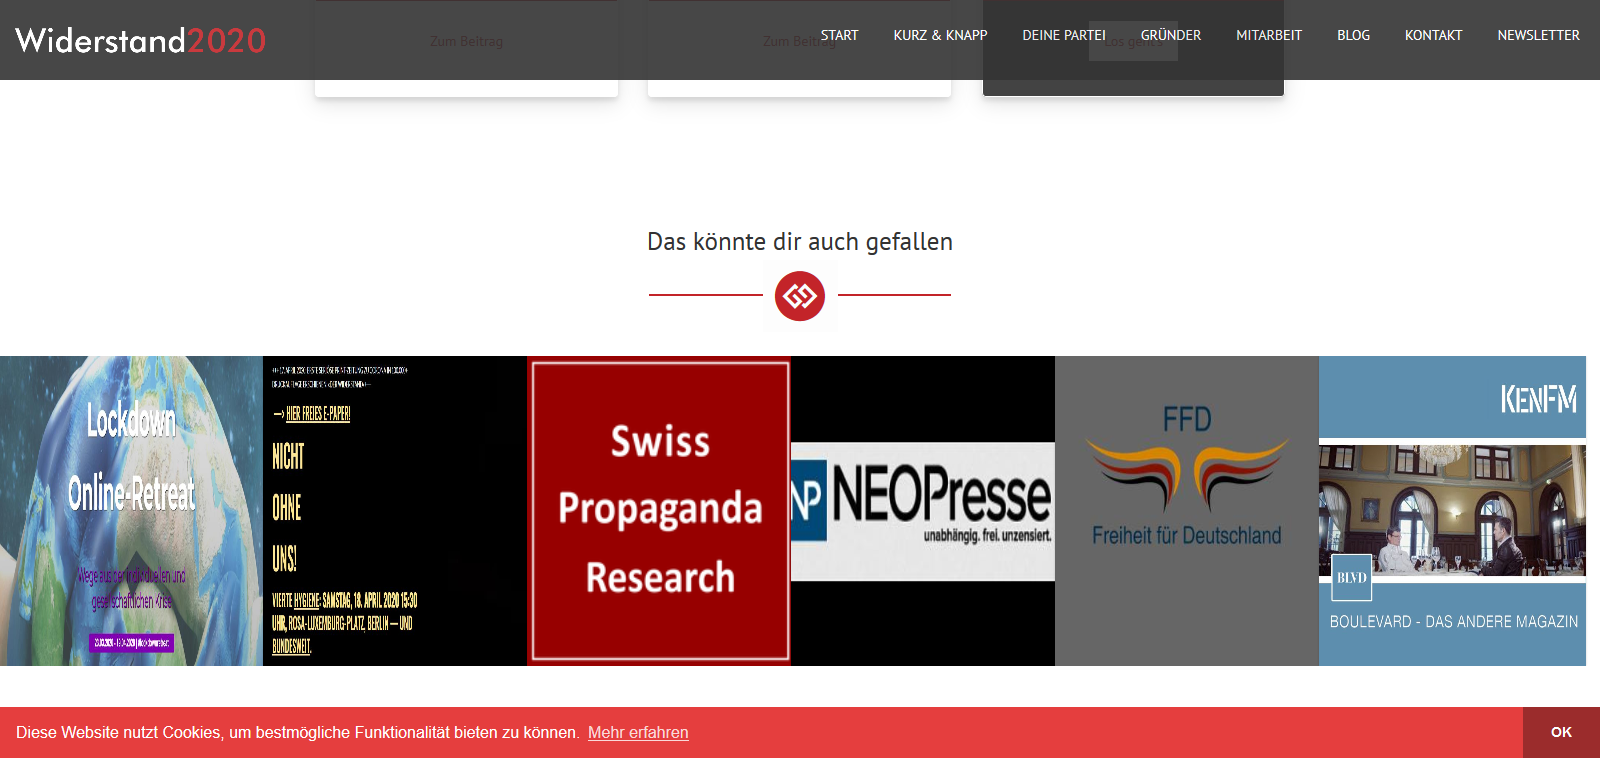 Screenshot der Website Widerstand2020